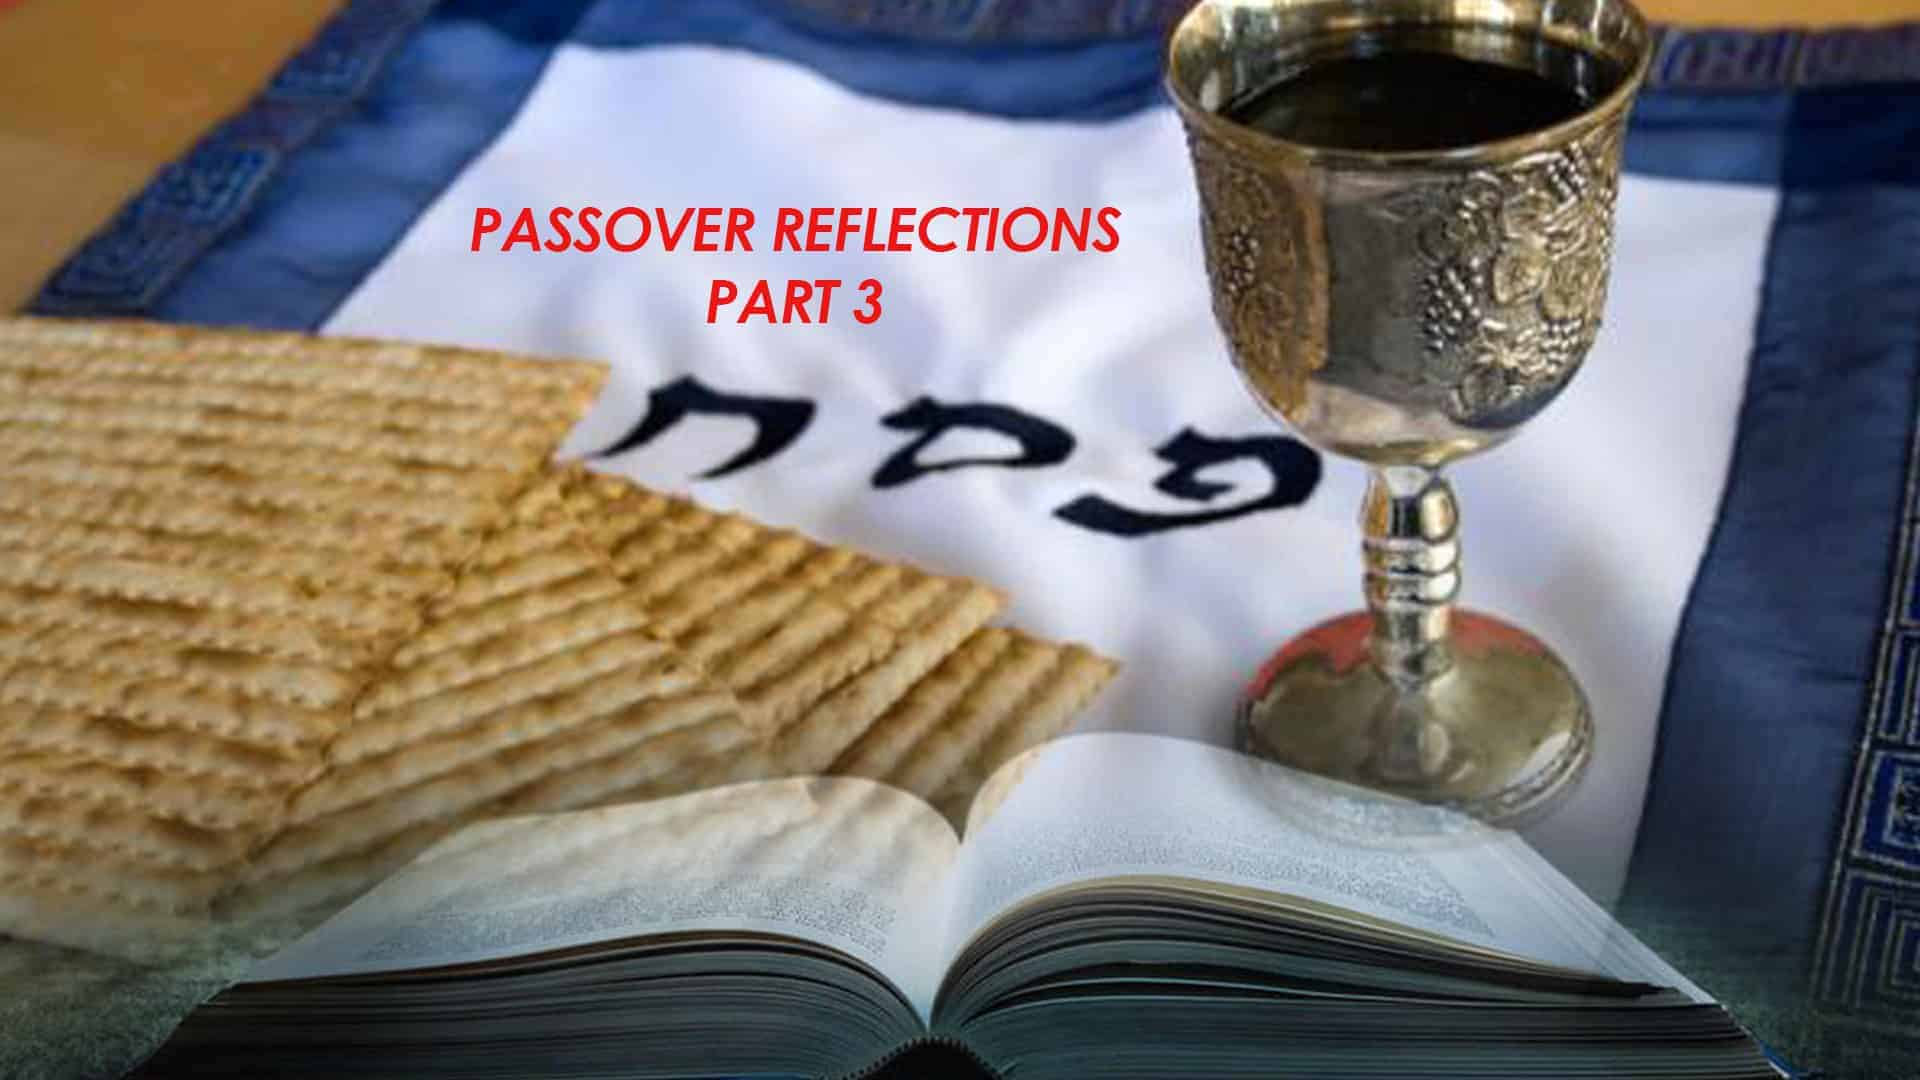 Passover Reflections Part 3